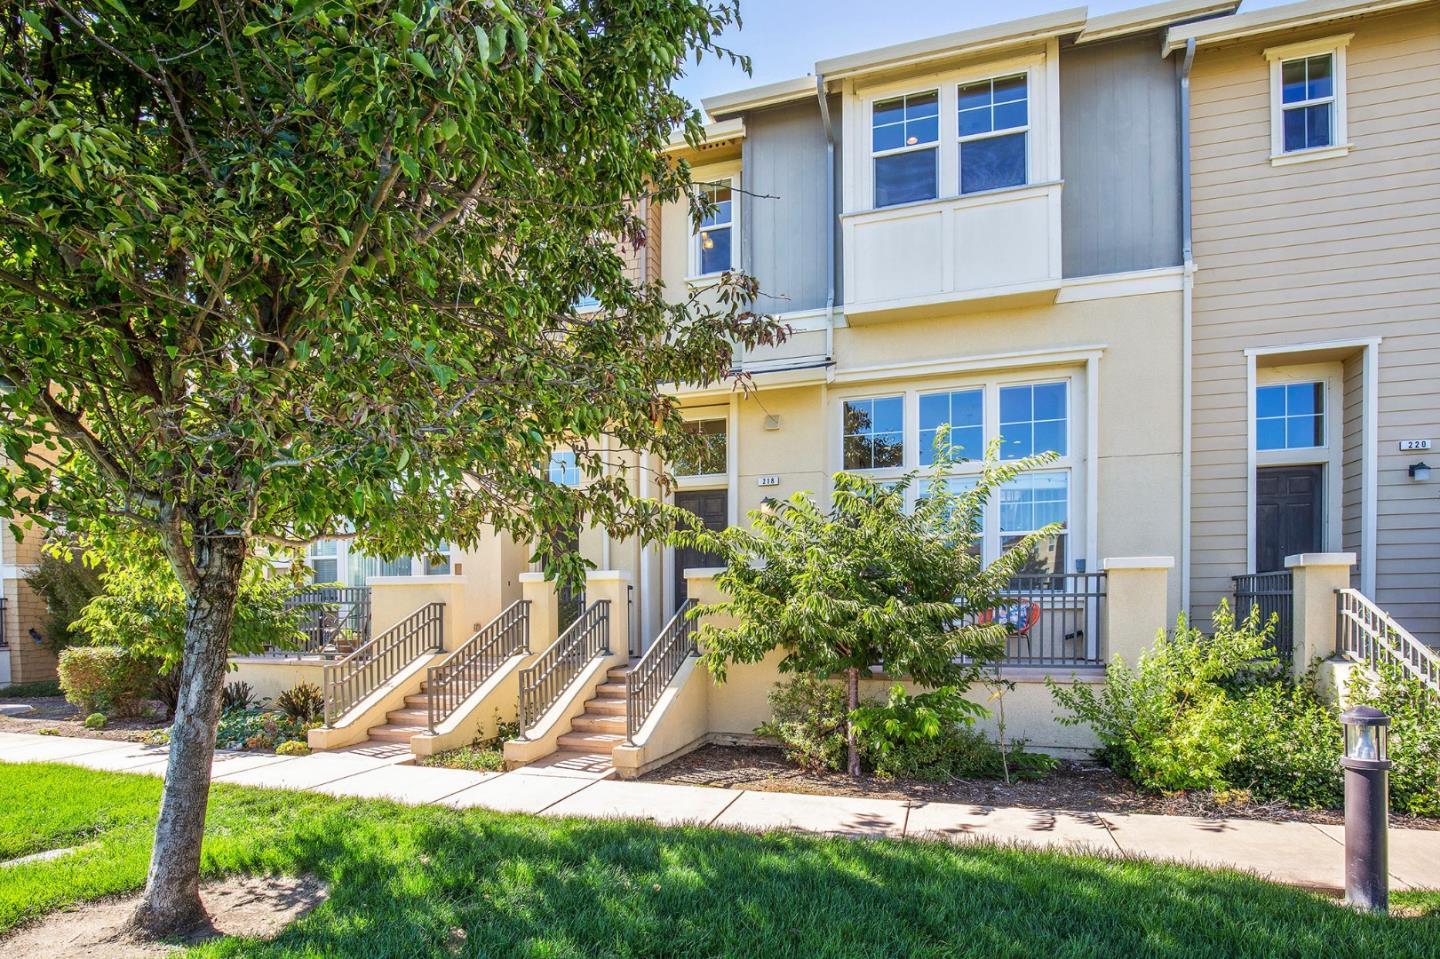 218 HARTSTENE DR, REDWOOD SHORES, CA 94065